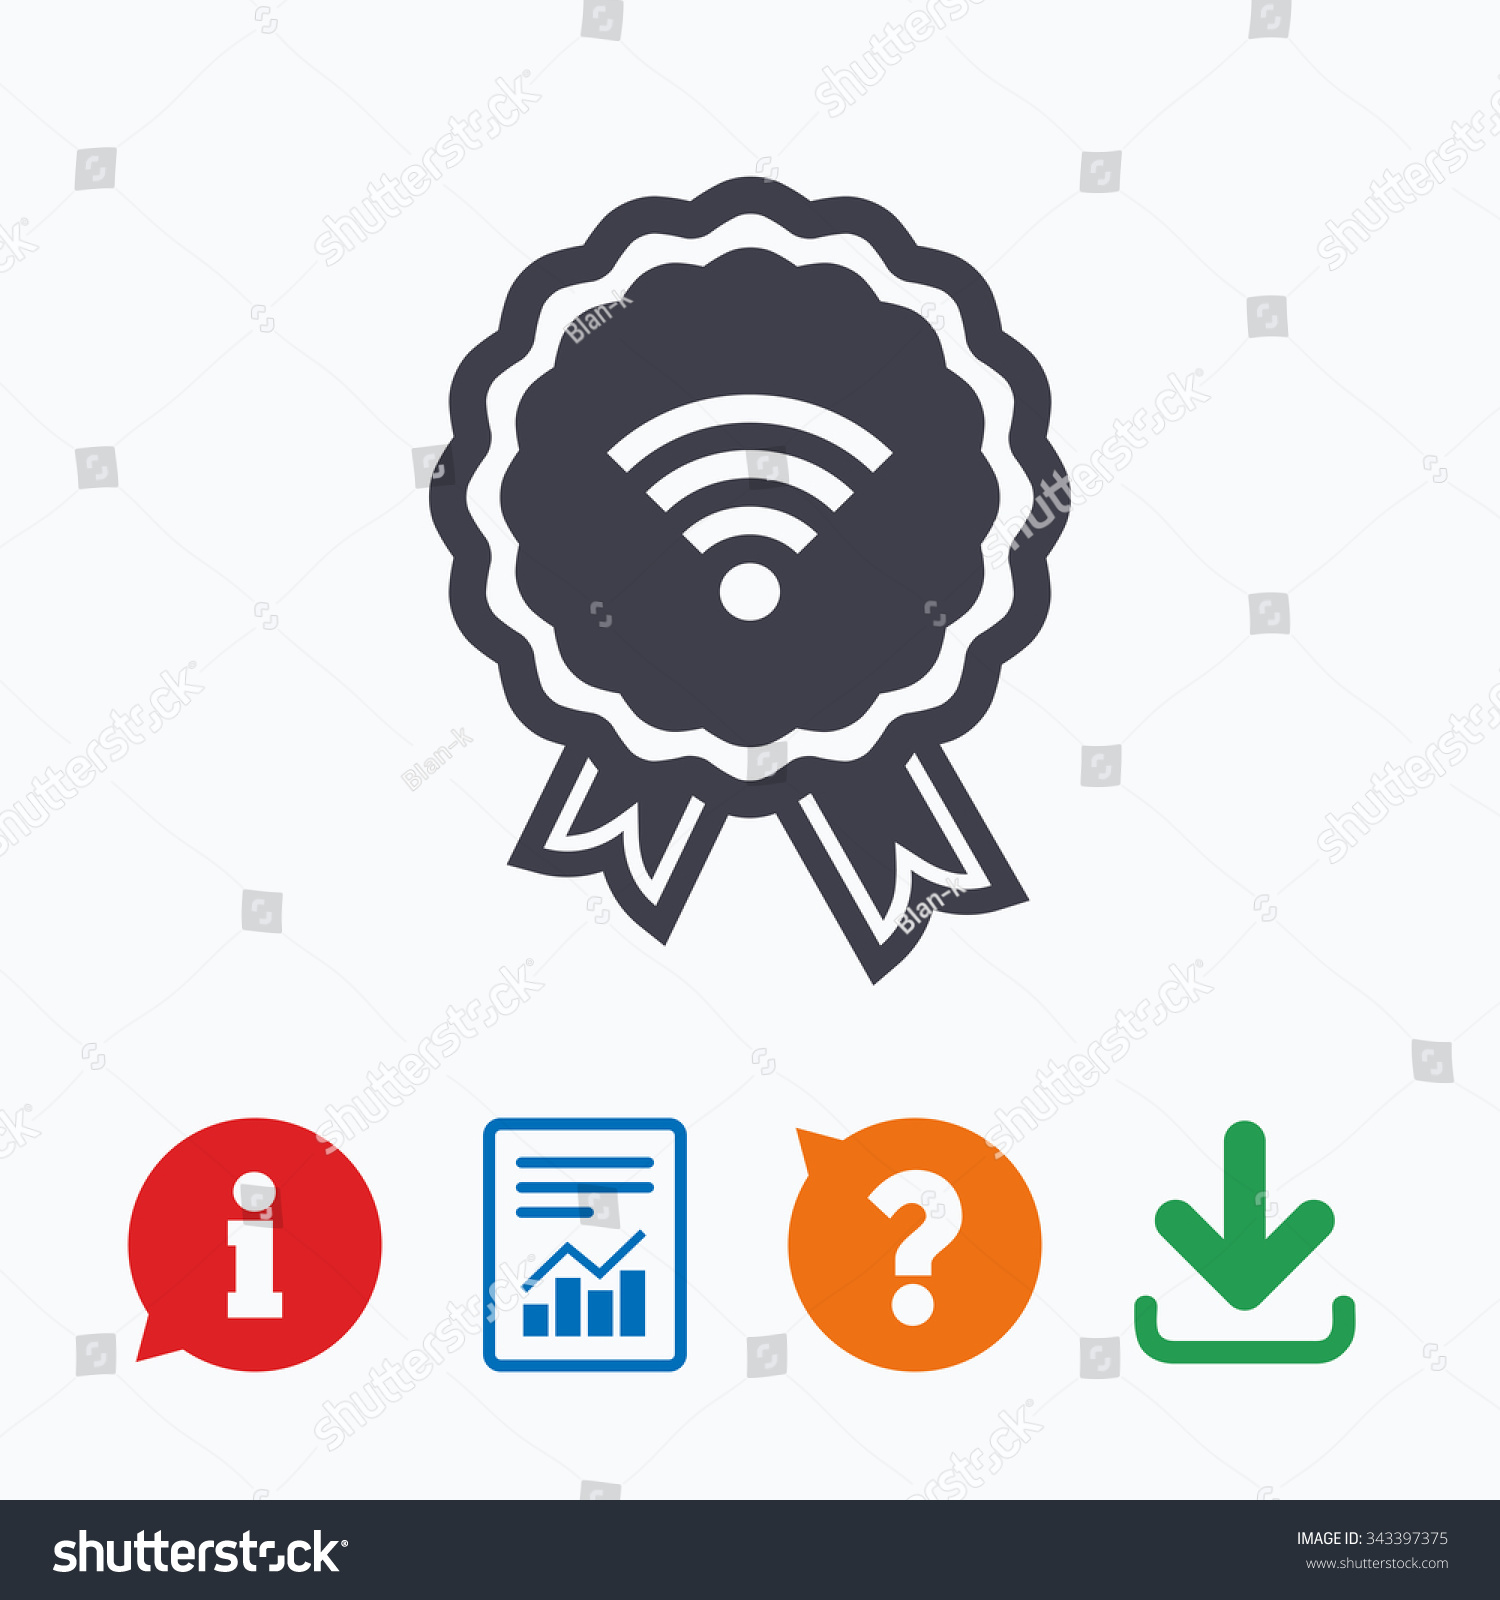 Propuesta de Medalla del Congreso al Mérito para Moreno Stock-vector-award-wifi-sign-wi-fi-medal-symbol-wireless-network-icon-wifi-zone-information-think-bubble-343397375